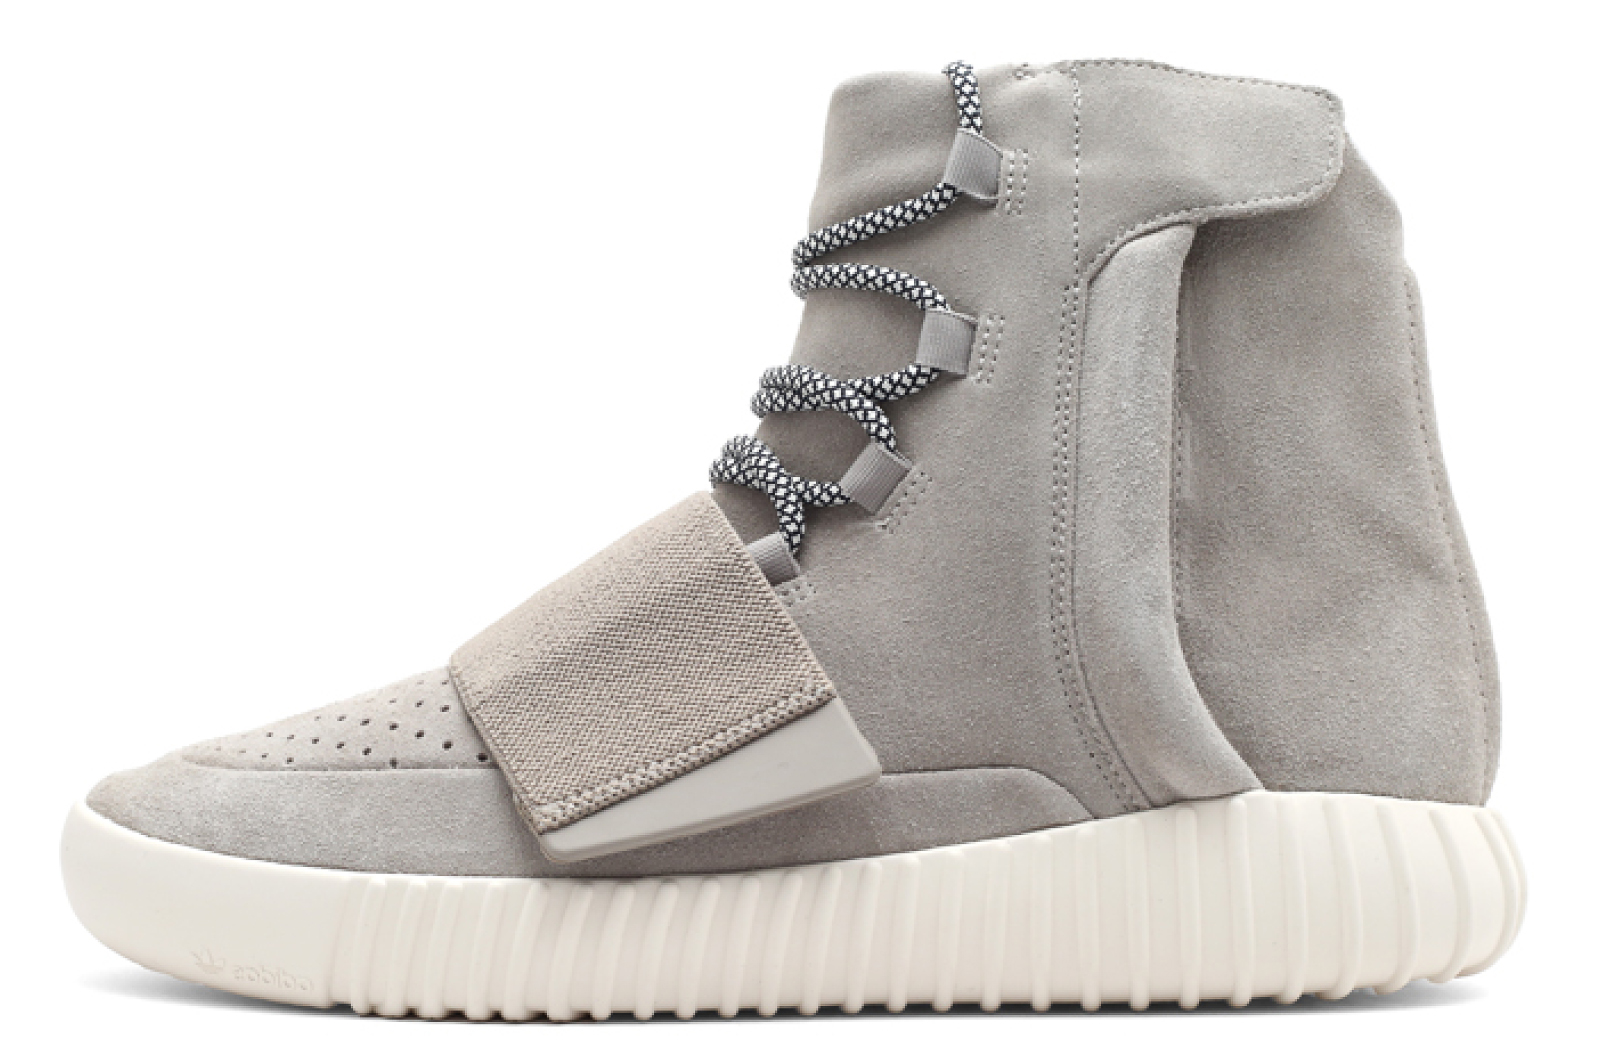 ff412ff8dfcd8 YEEZY BOOST 750  OG Light Brown  B35309  B35309  -  139.95 ...